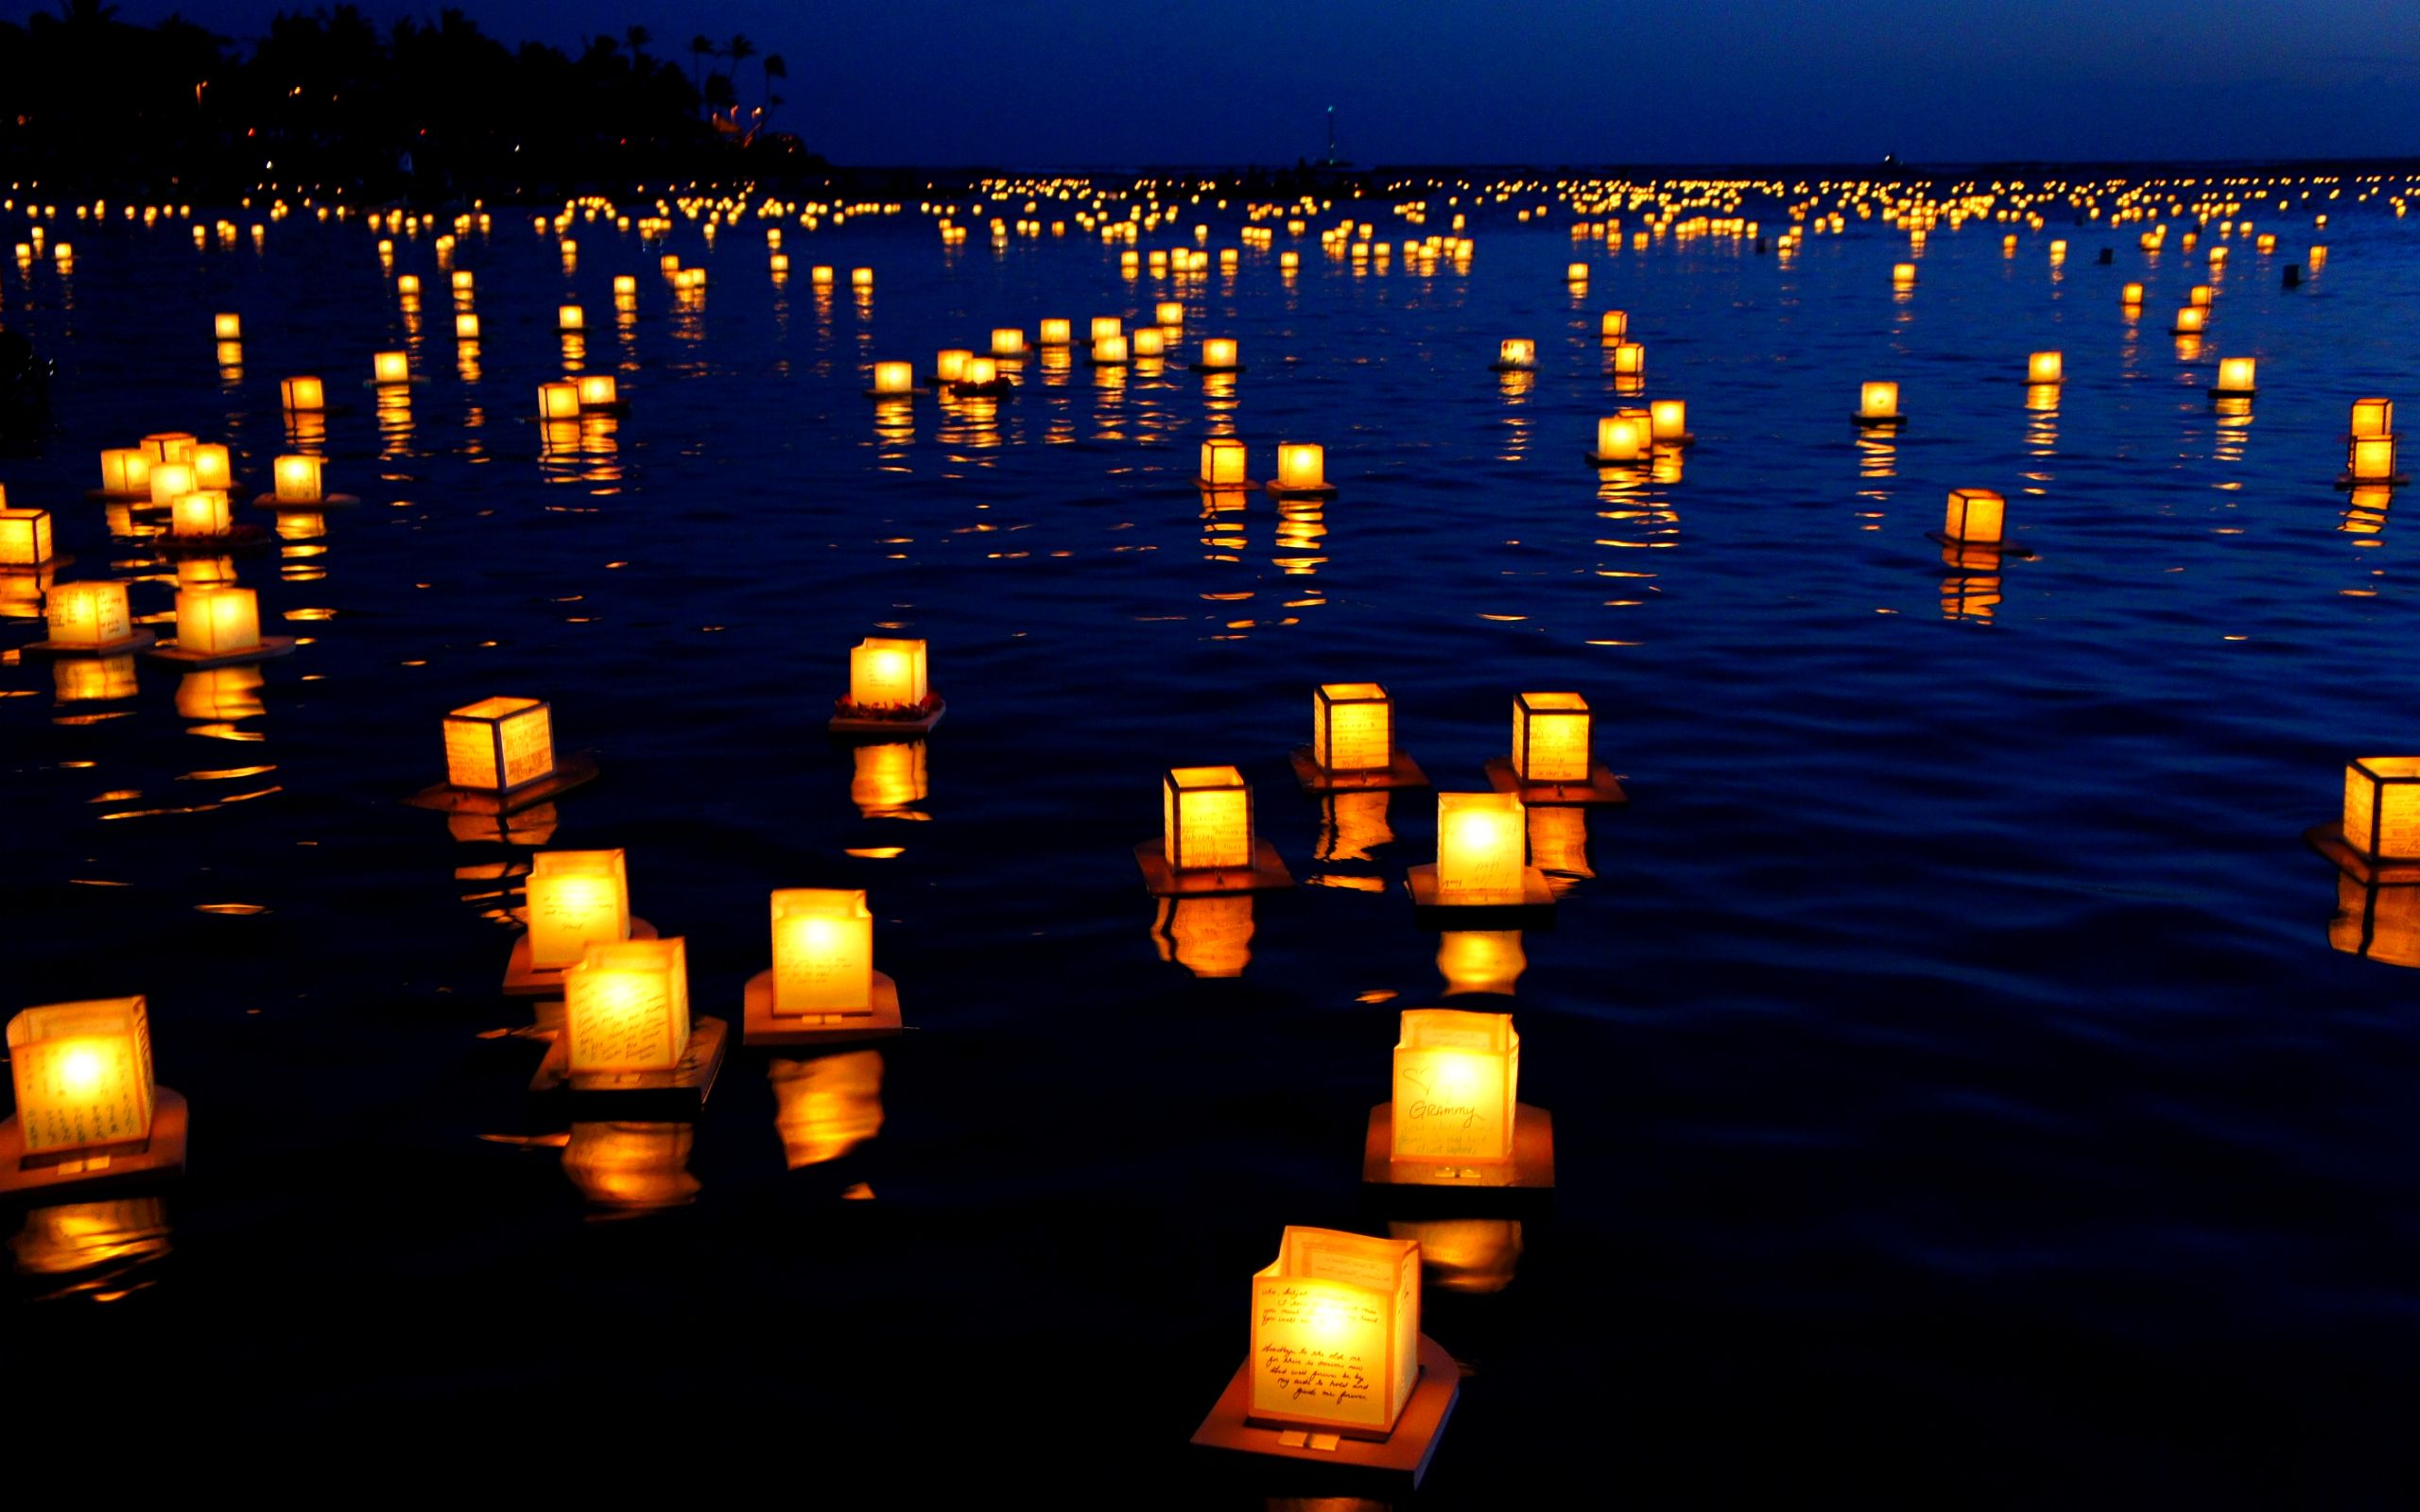 Free Water Candle Wallpapers Desktop Floating Lanterns Candles Wallpaper Floating Lantern Festival